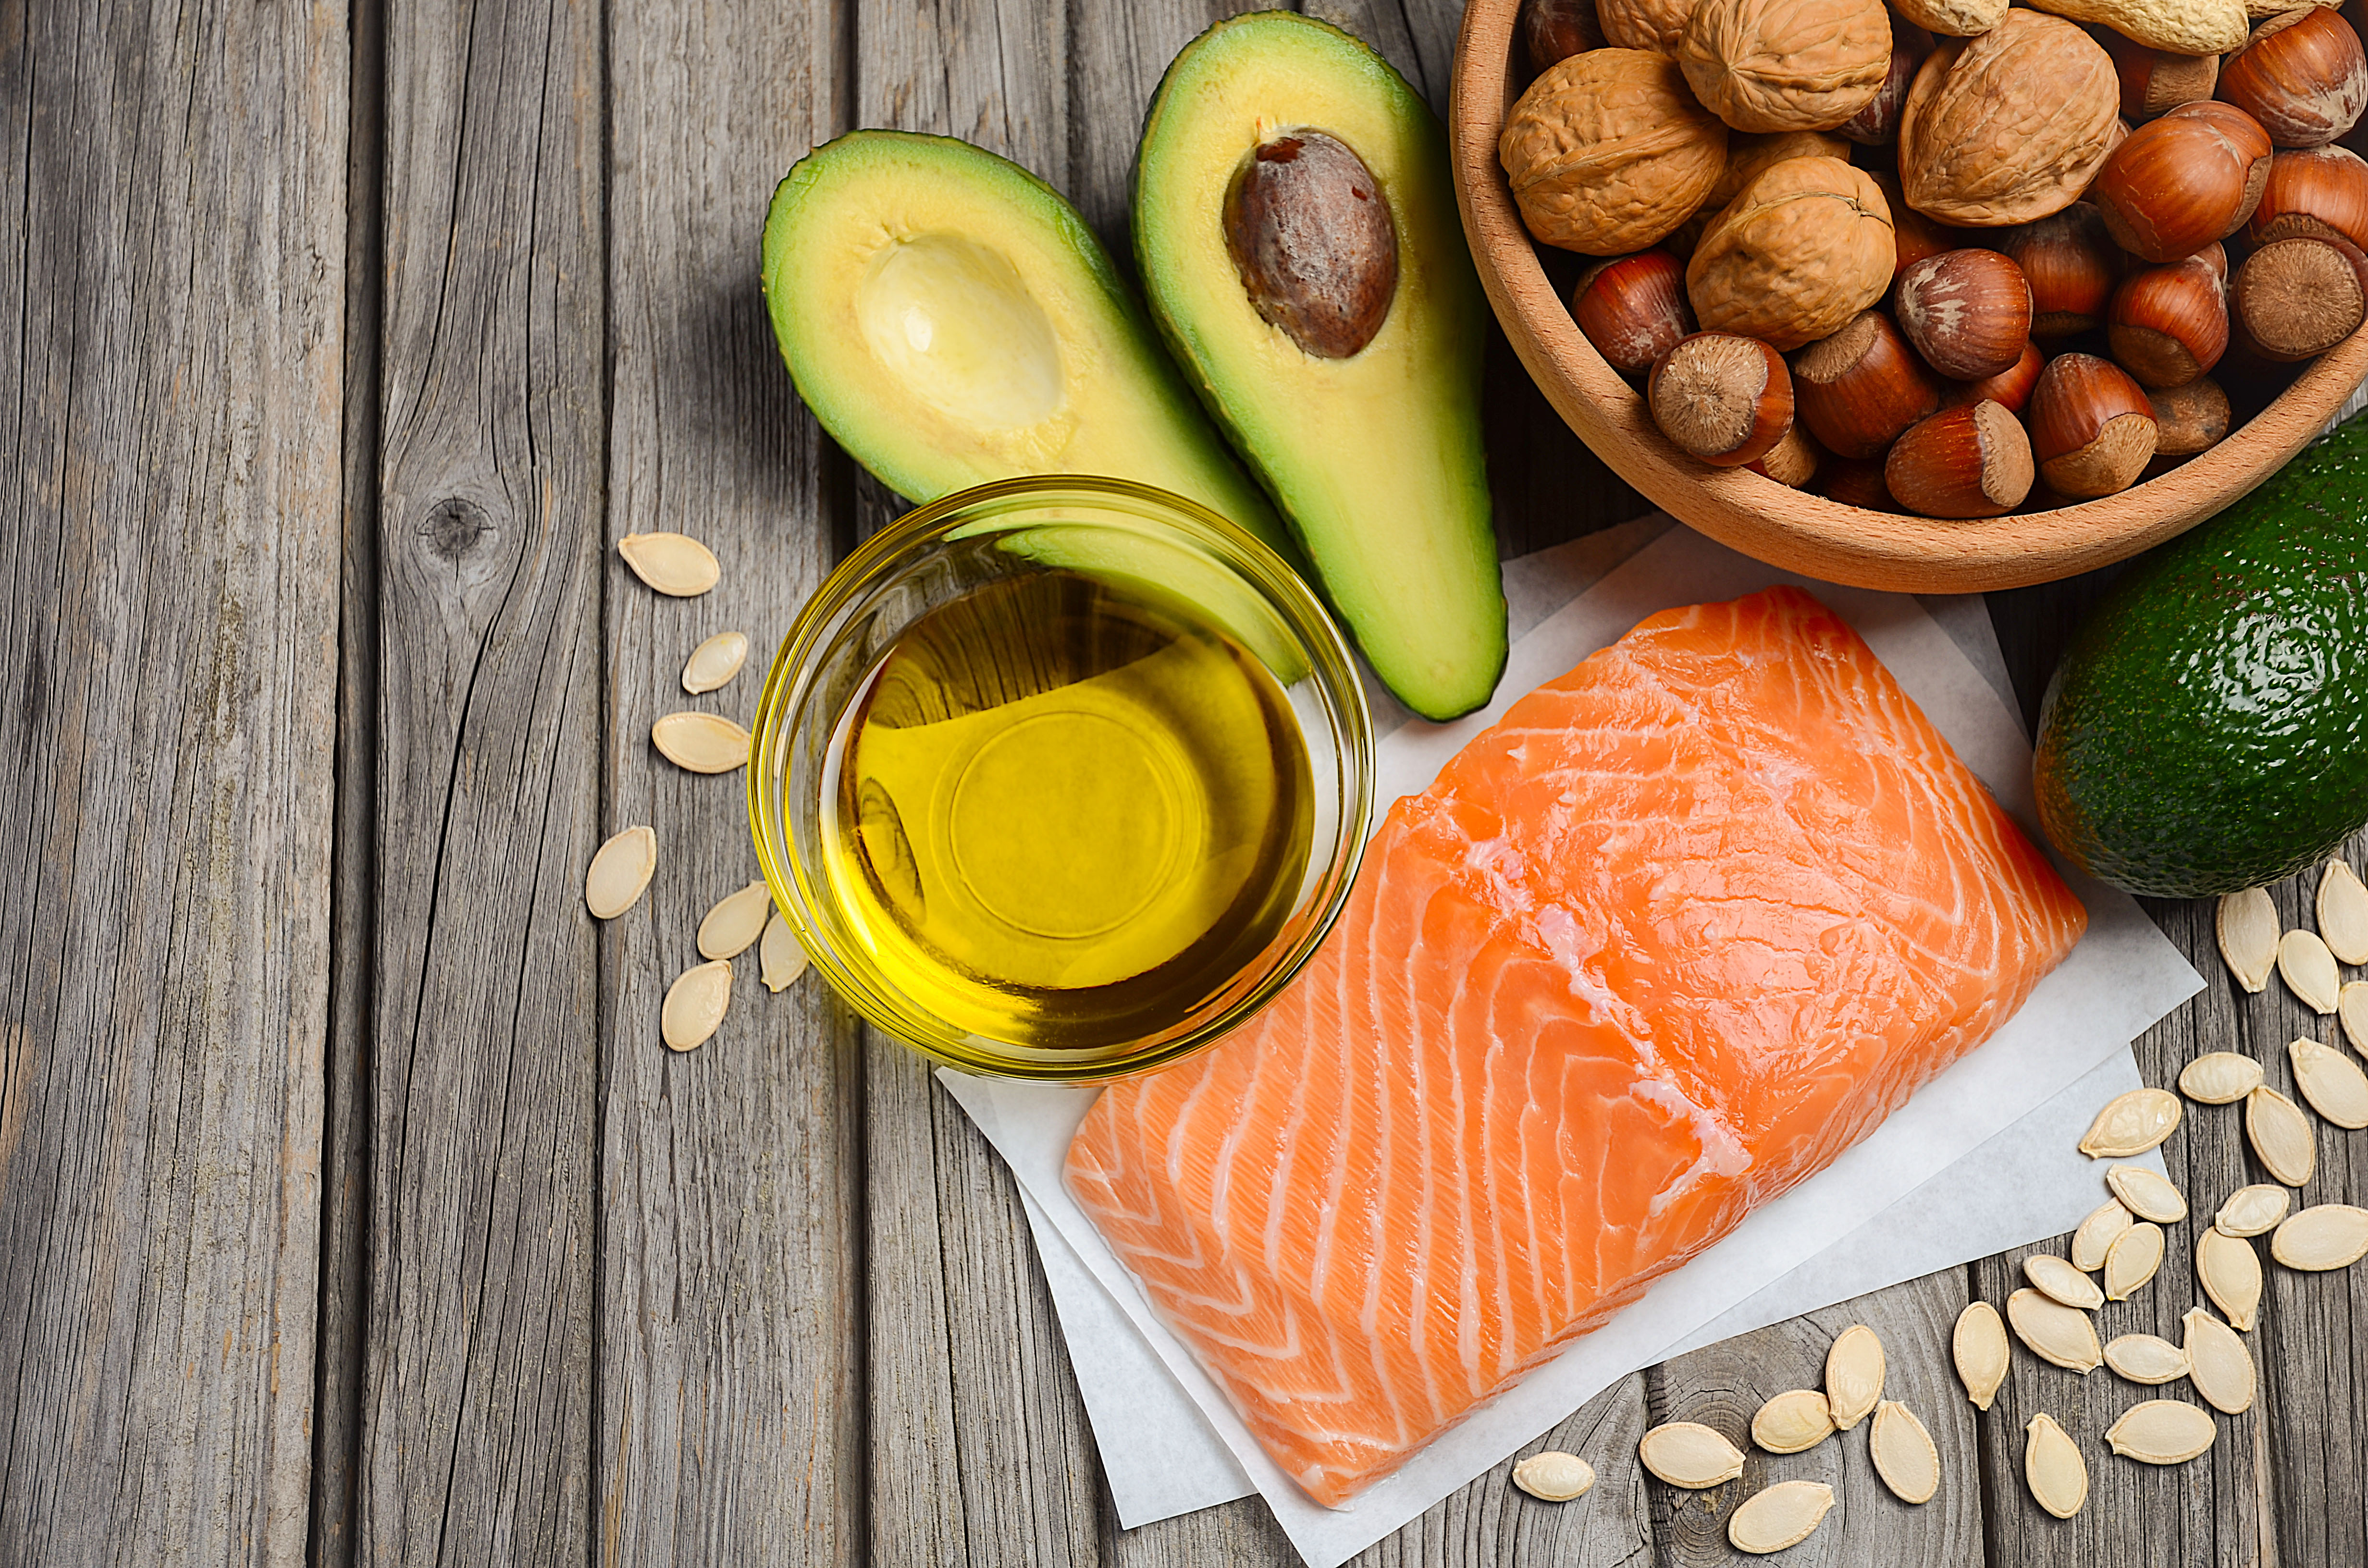 picture of olive oil, salmon, avocado and a bowl of nuts